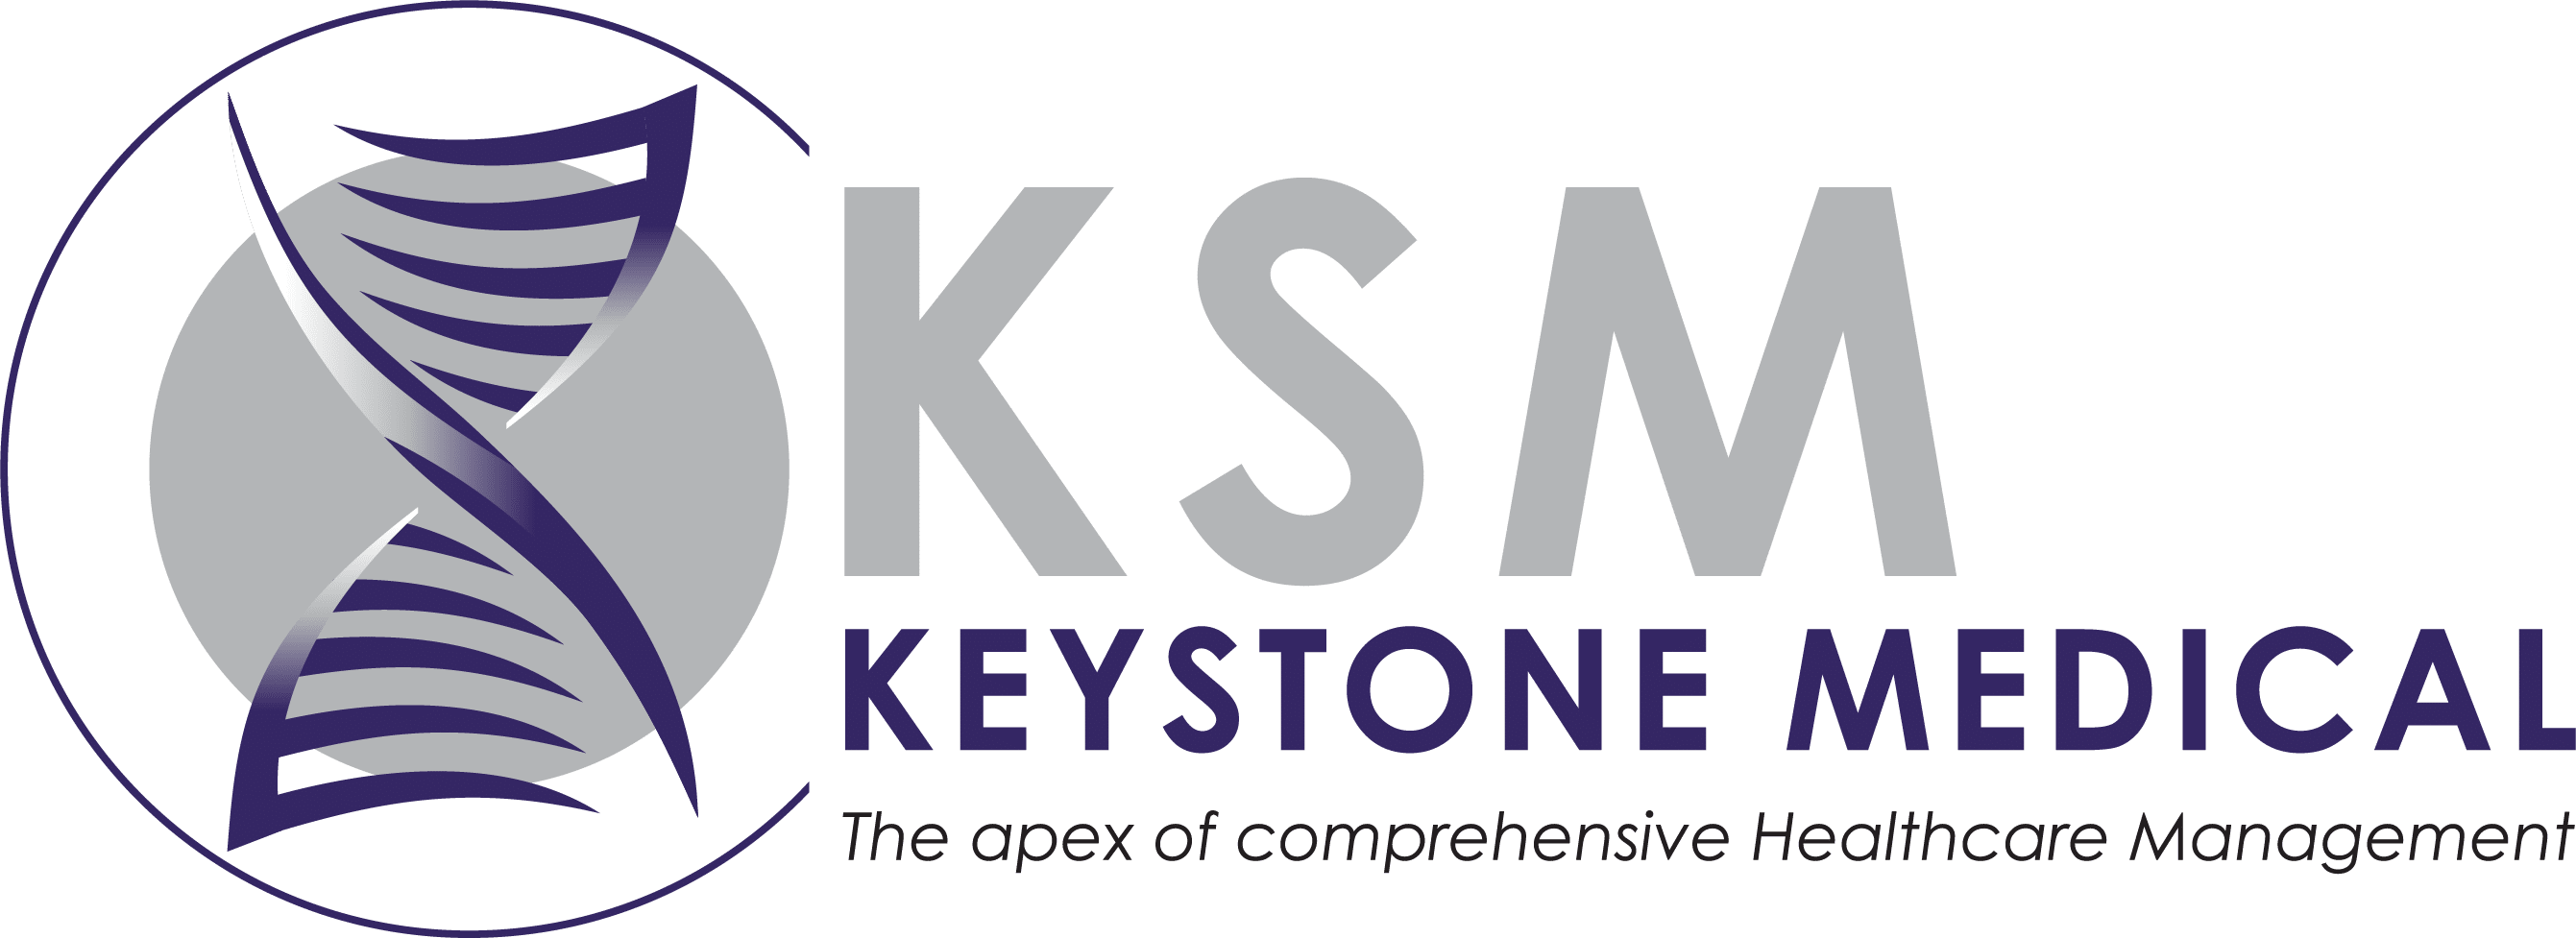 Keystone Medical